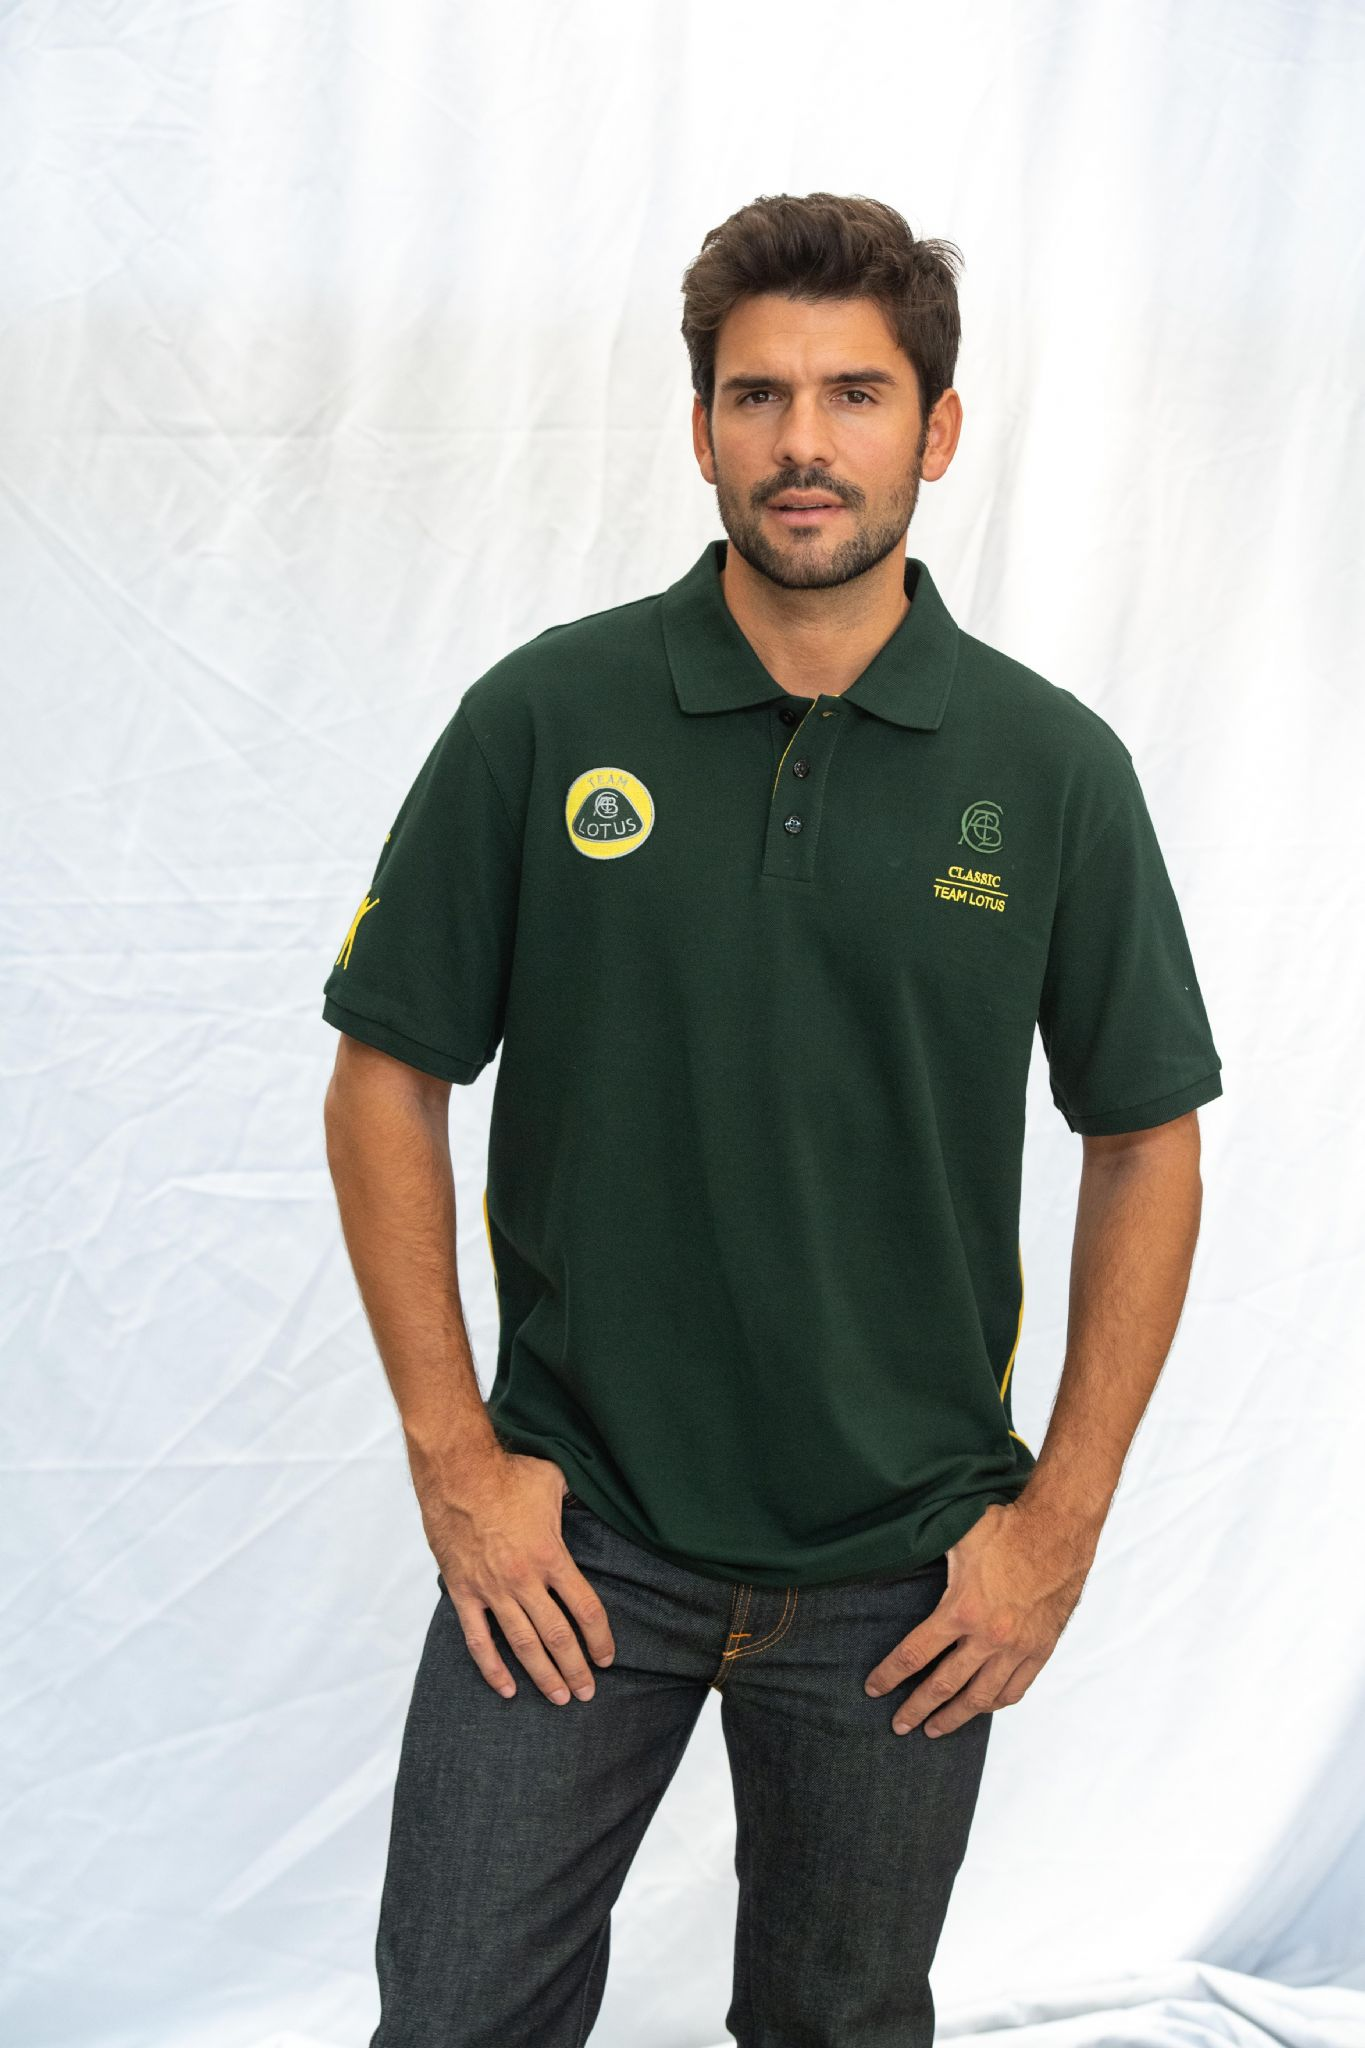 MERCHANDISE LOTUS Classic-team-lotus-polo-shirt-233-p